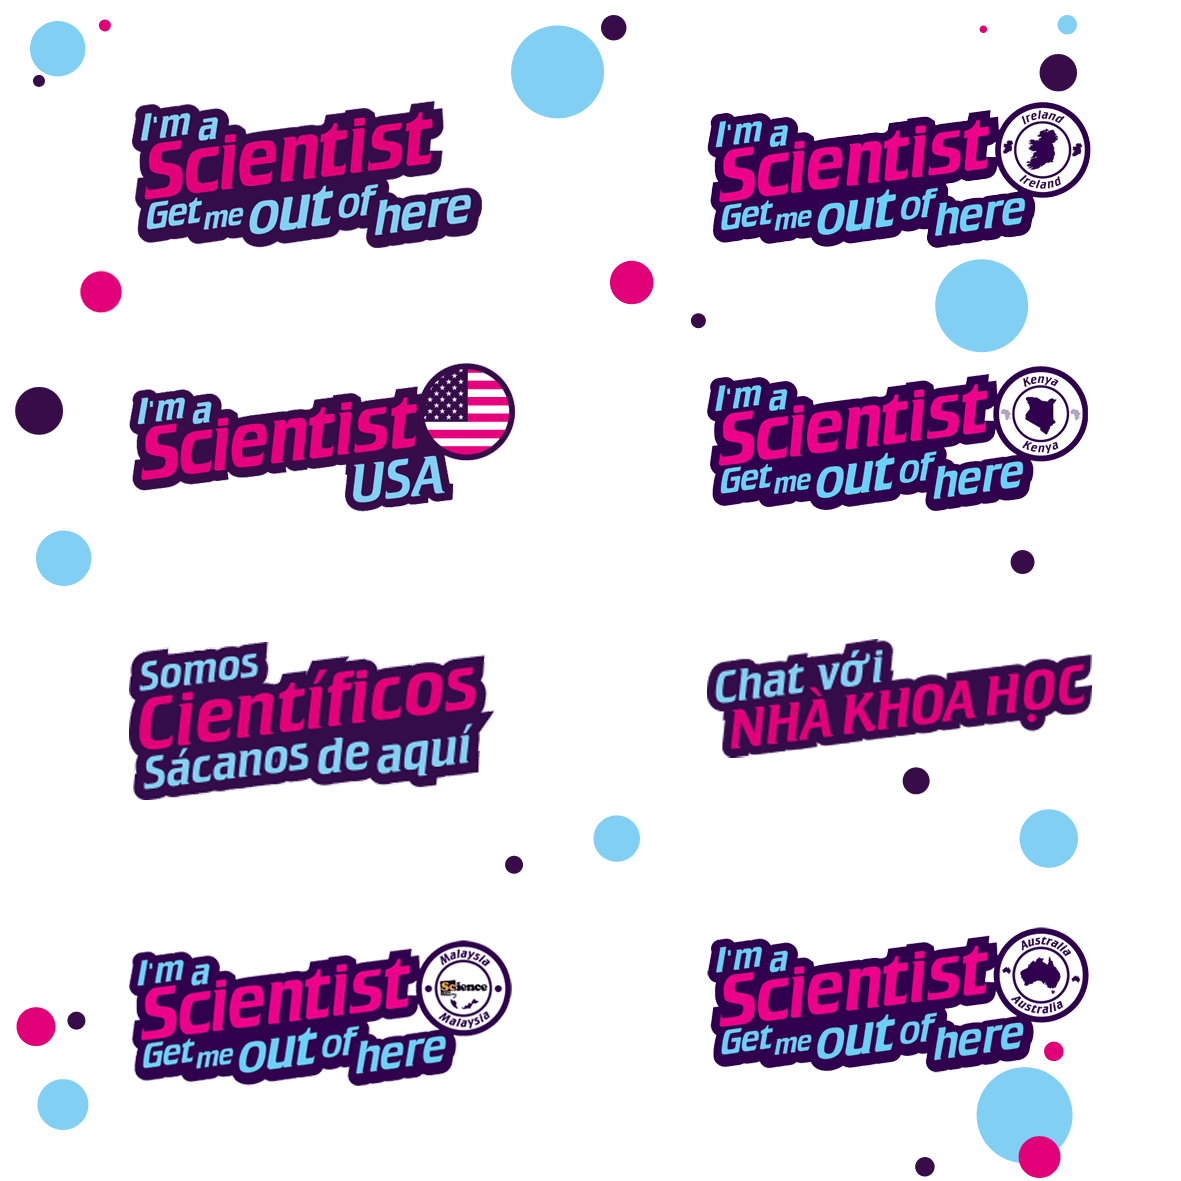 International I'm a Scientist Events